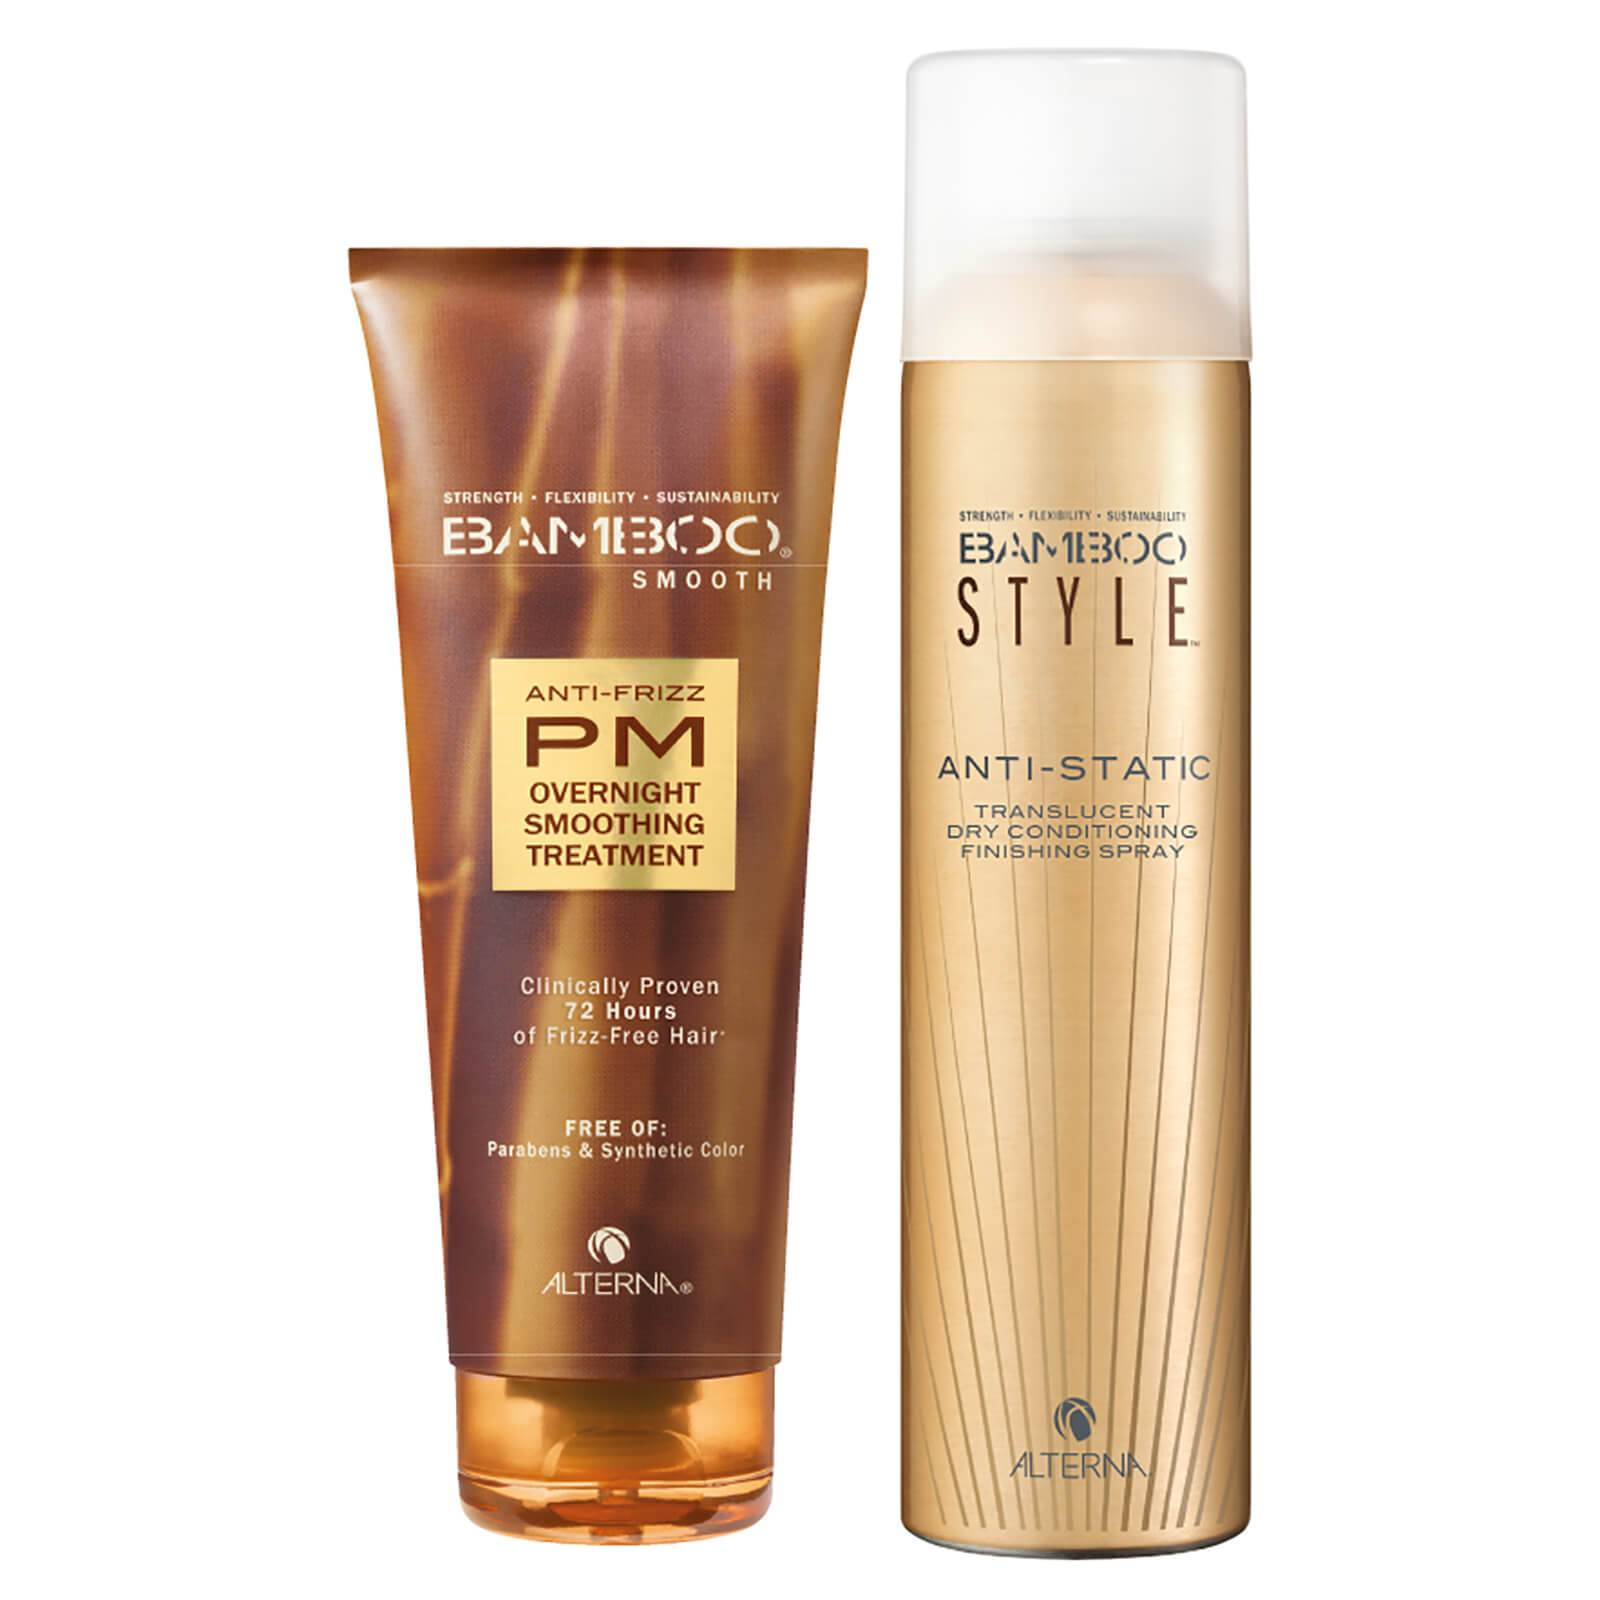 Alterna Bamboo Style Dry Finishing Spray and PM Overnight Smoothing Treatment Duo